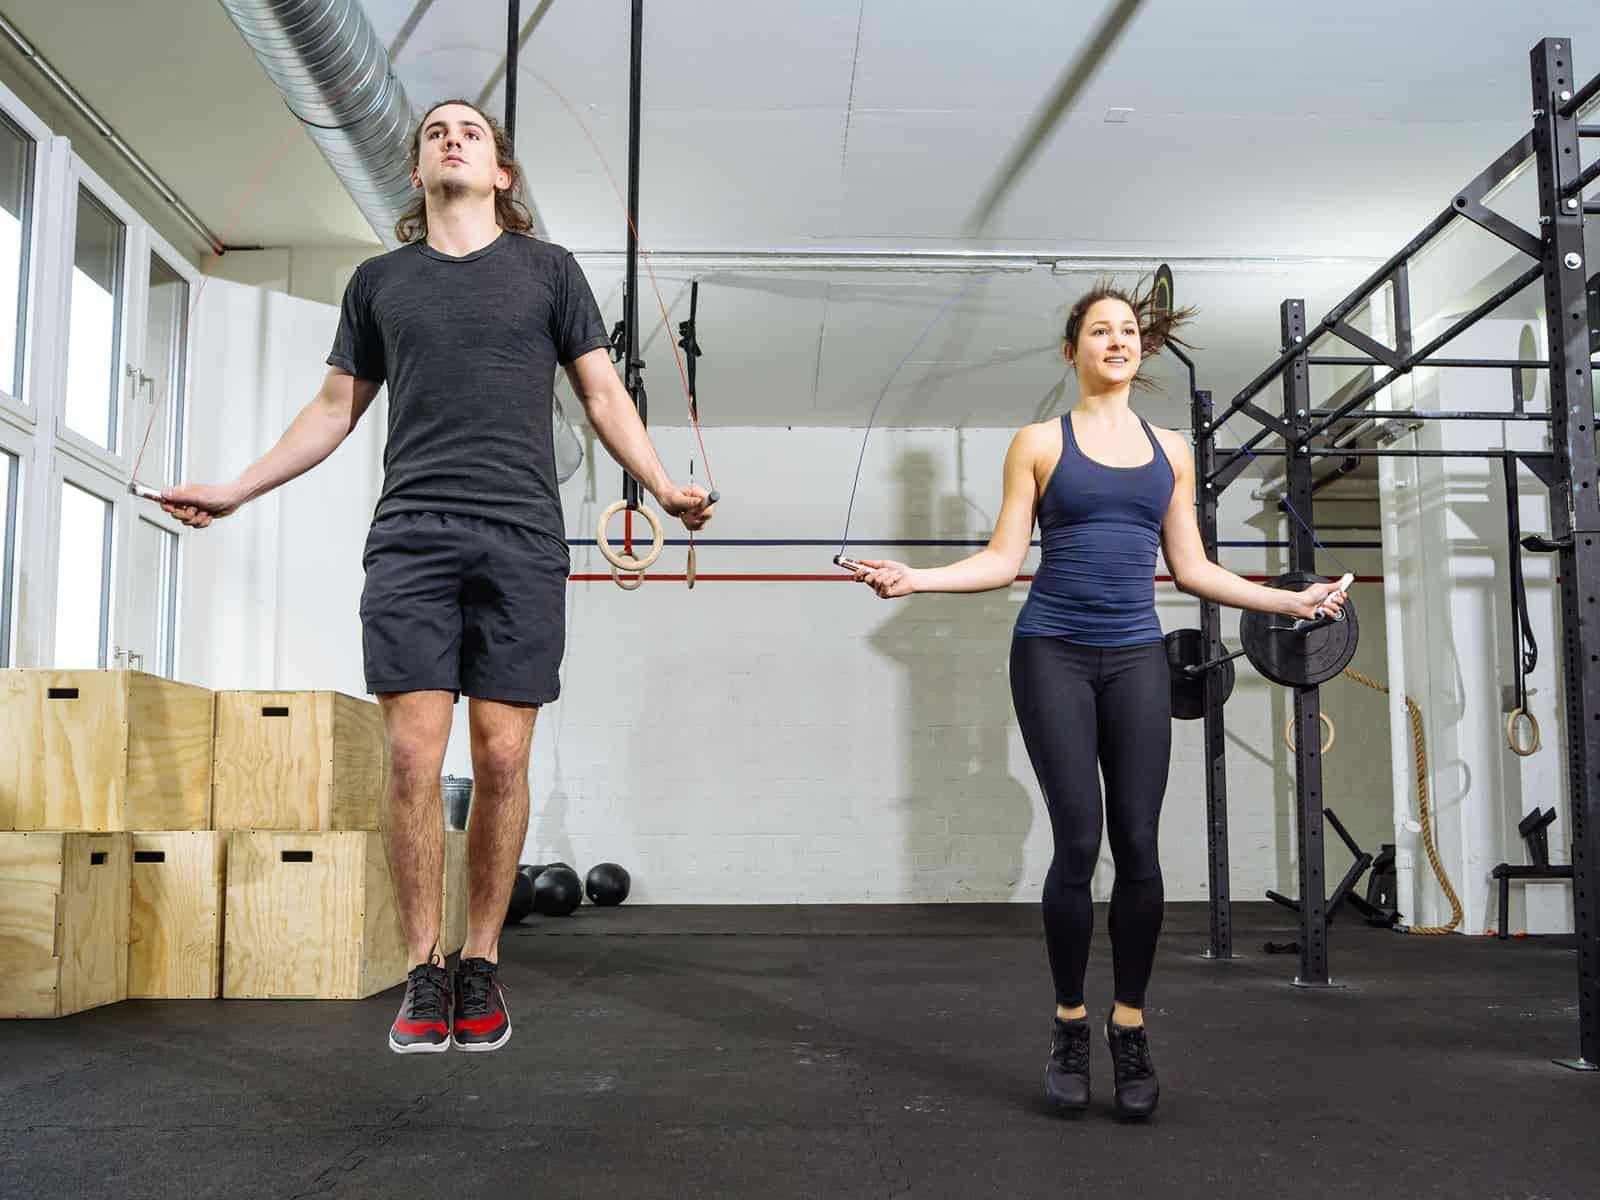 Skipping Rope For Weight Loss and Other Benefits